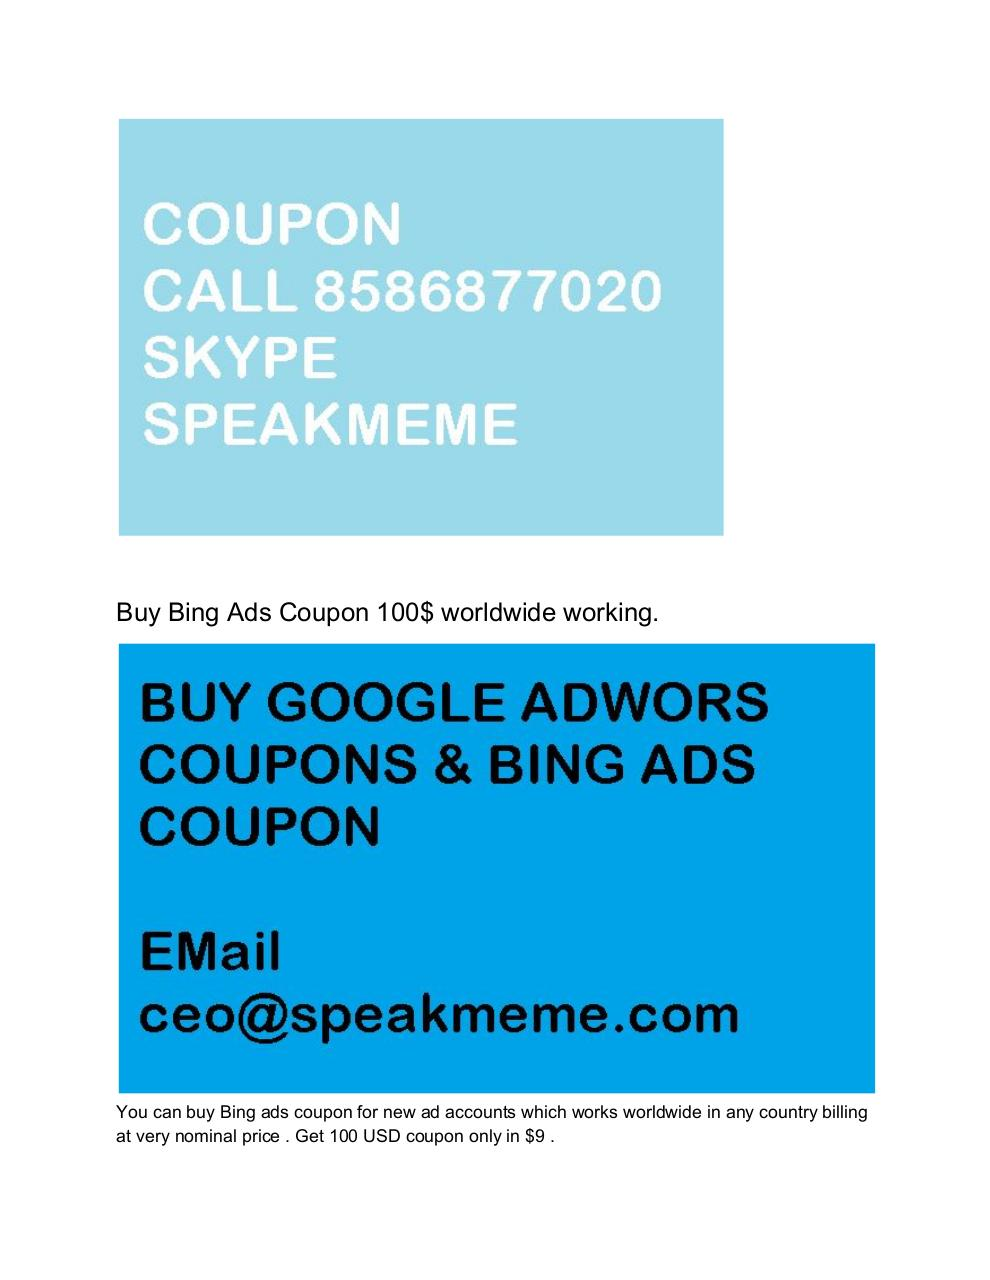 Buy Adwords Coupon - Adwords Coupon 2018 - 100% working Voucher - Call 8586877020.pdf - page 2/3